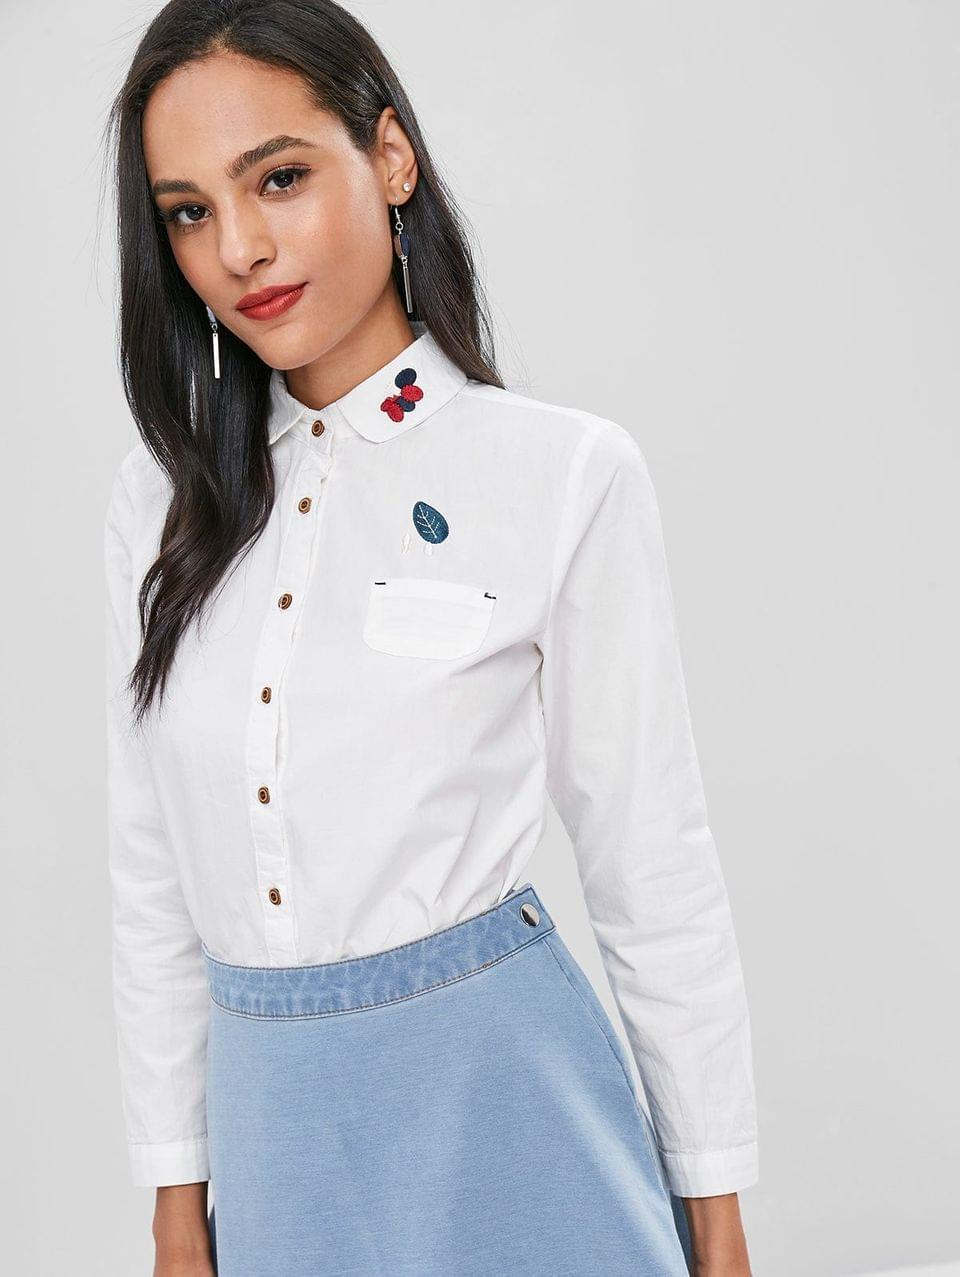 Women's Front Pocket Embroidery Cotton Shirt - White L